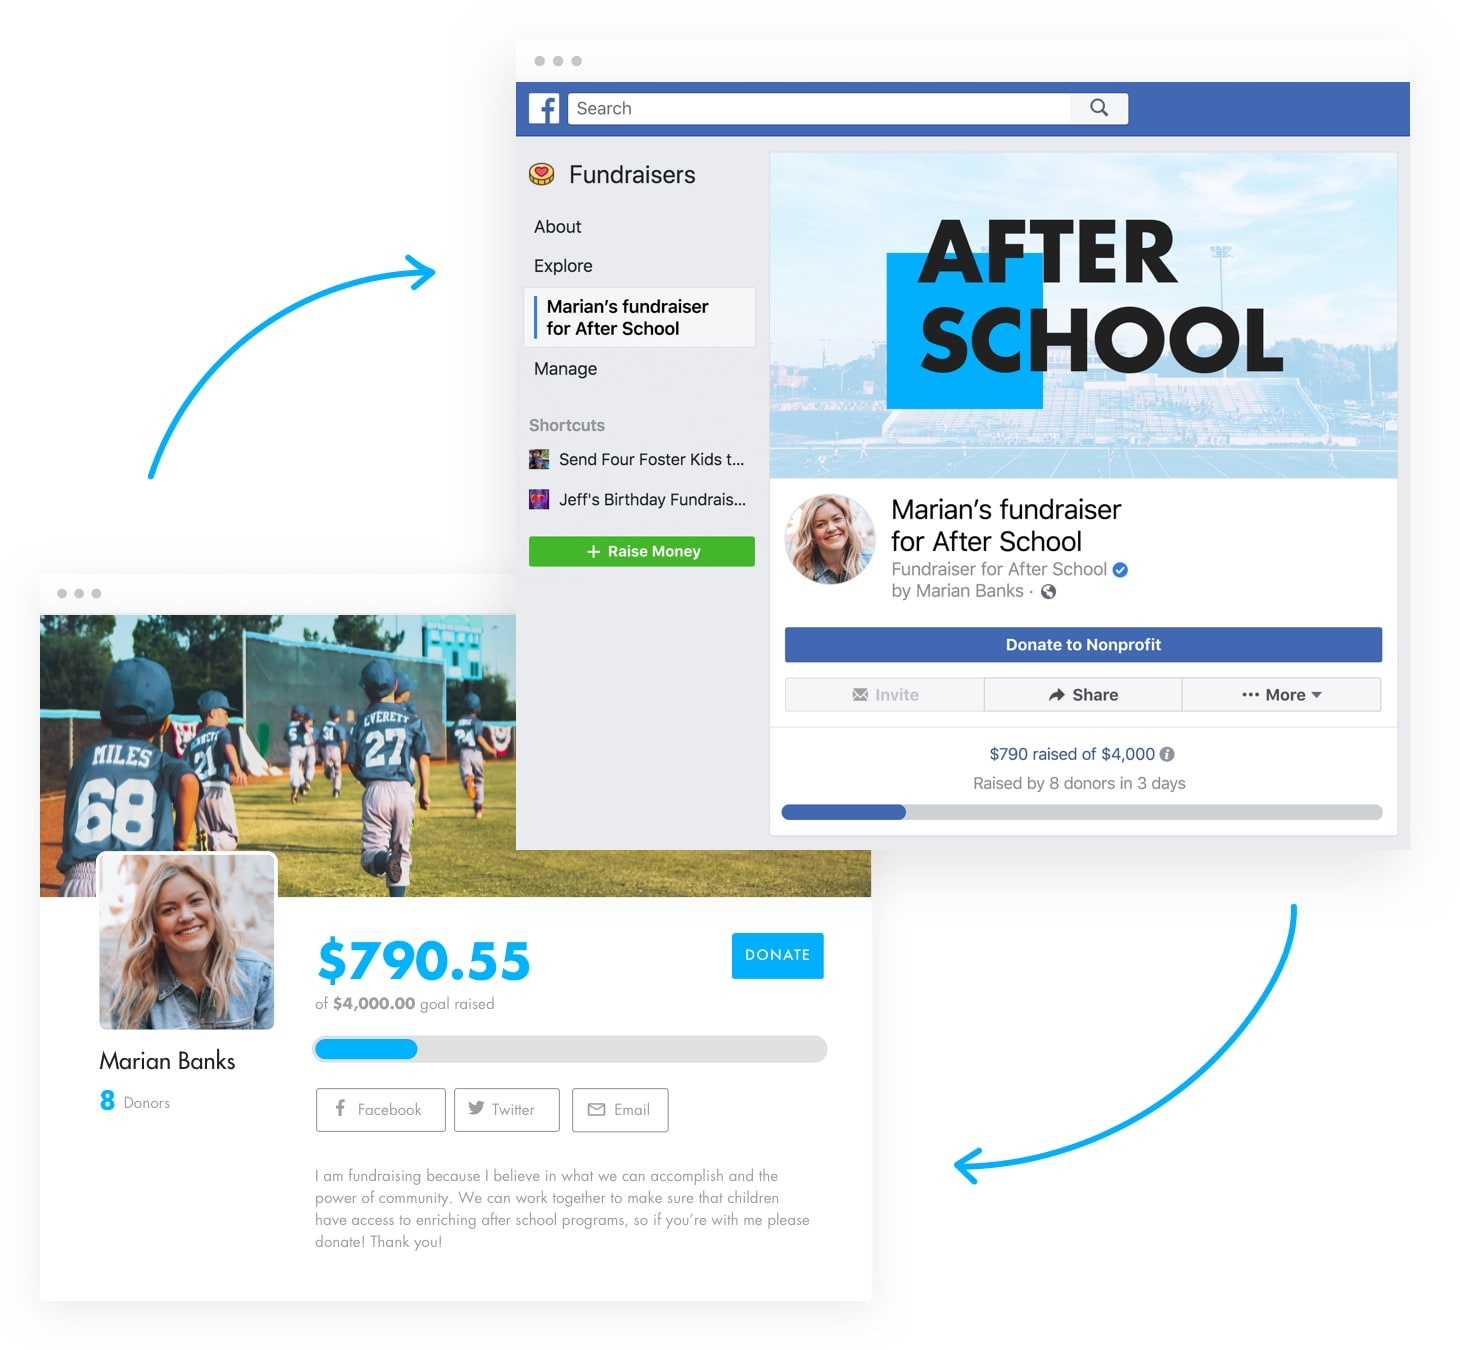 Screenshot of an individual fundraiser page for a kids' baseball team. To the right is a similar image of the same fundraiser, but on Facebook. There are drawn blue arrows going from the page to the Facebook page.